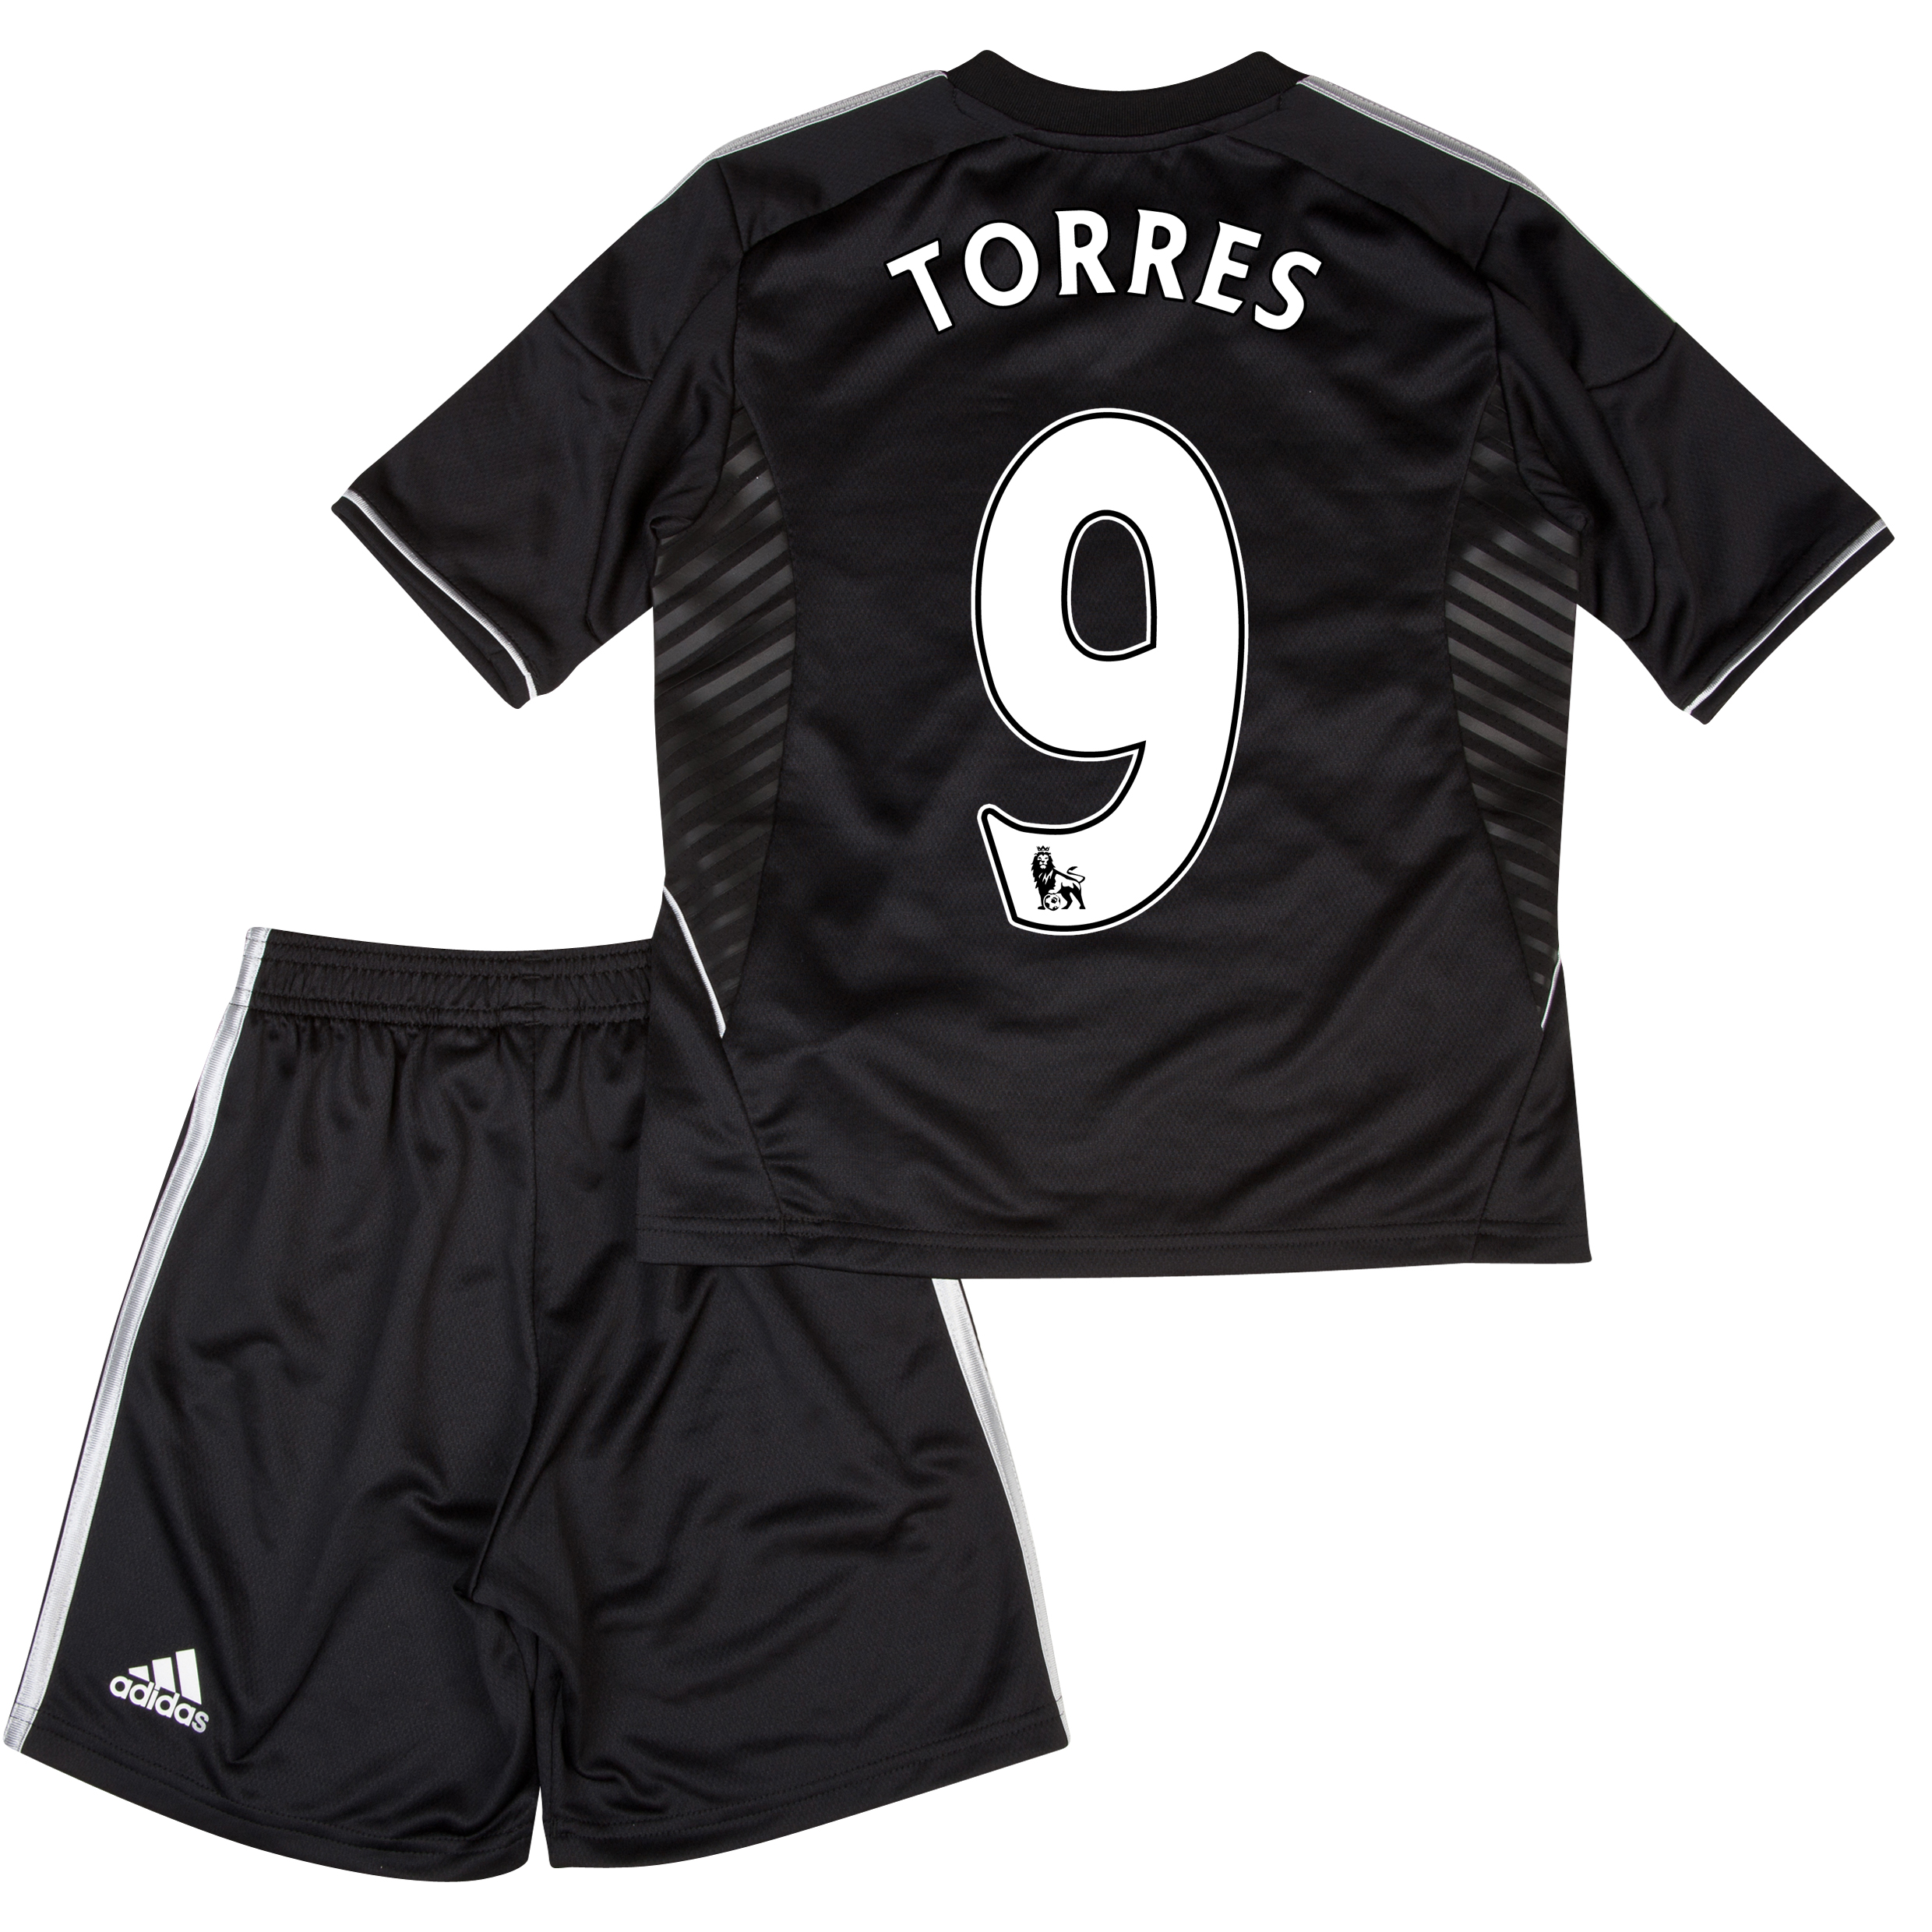 Chelsea Third Mini Kit 2013/14 with Torres 9 printing